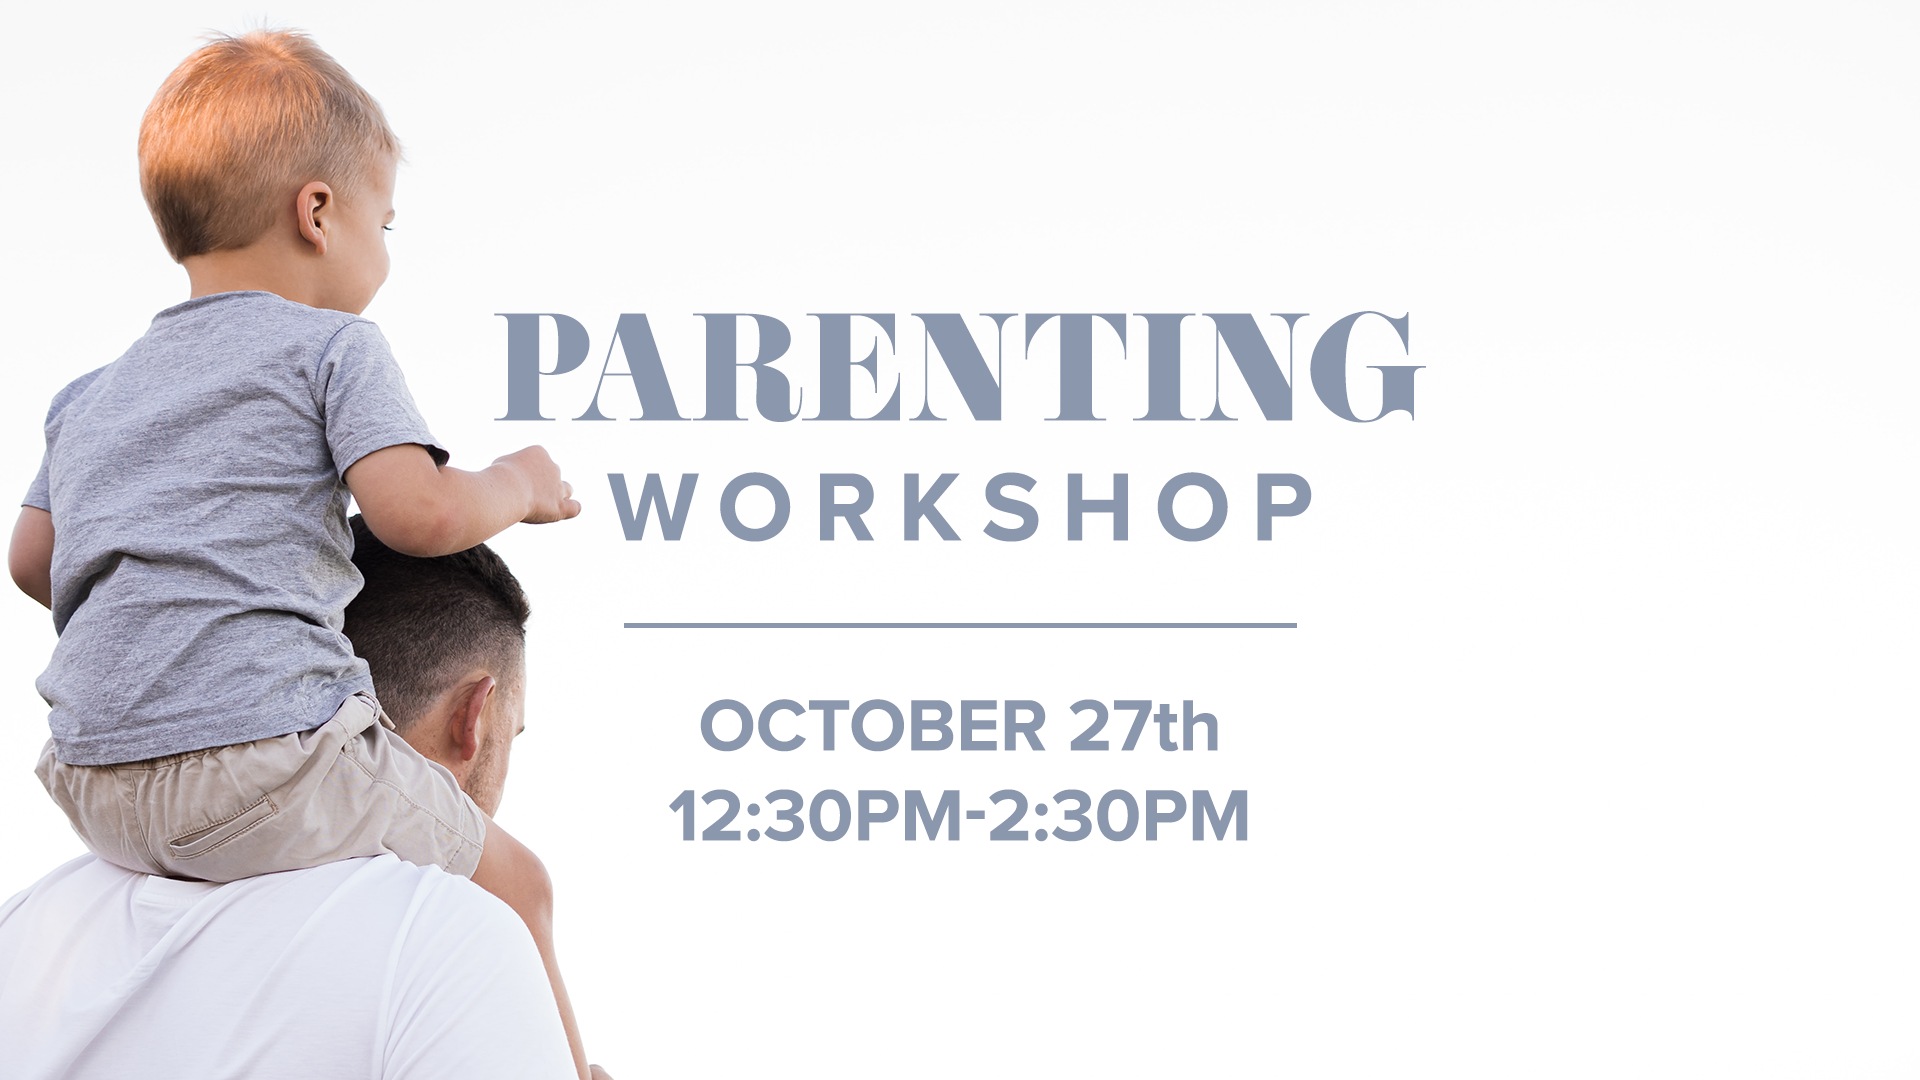 CP-Parenting-Workshop-1920x1080.png